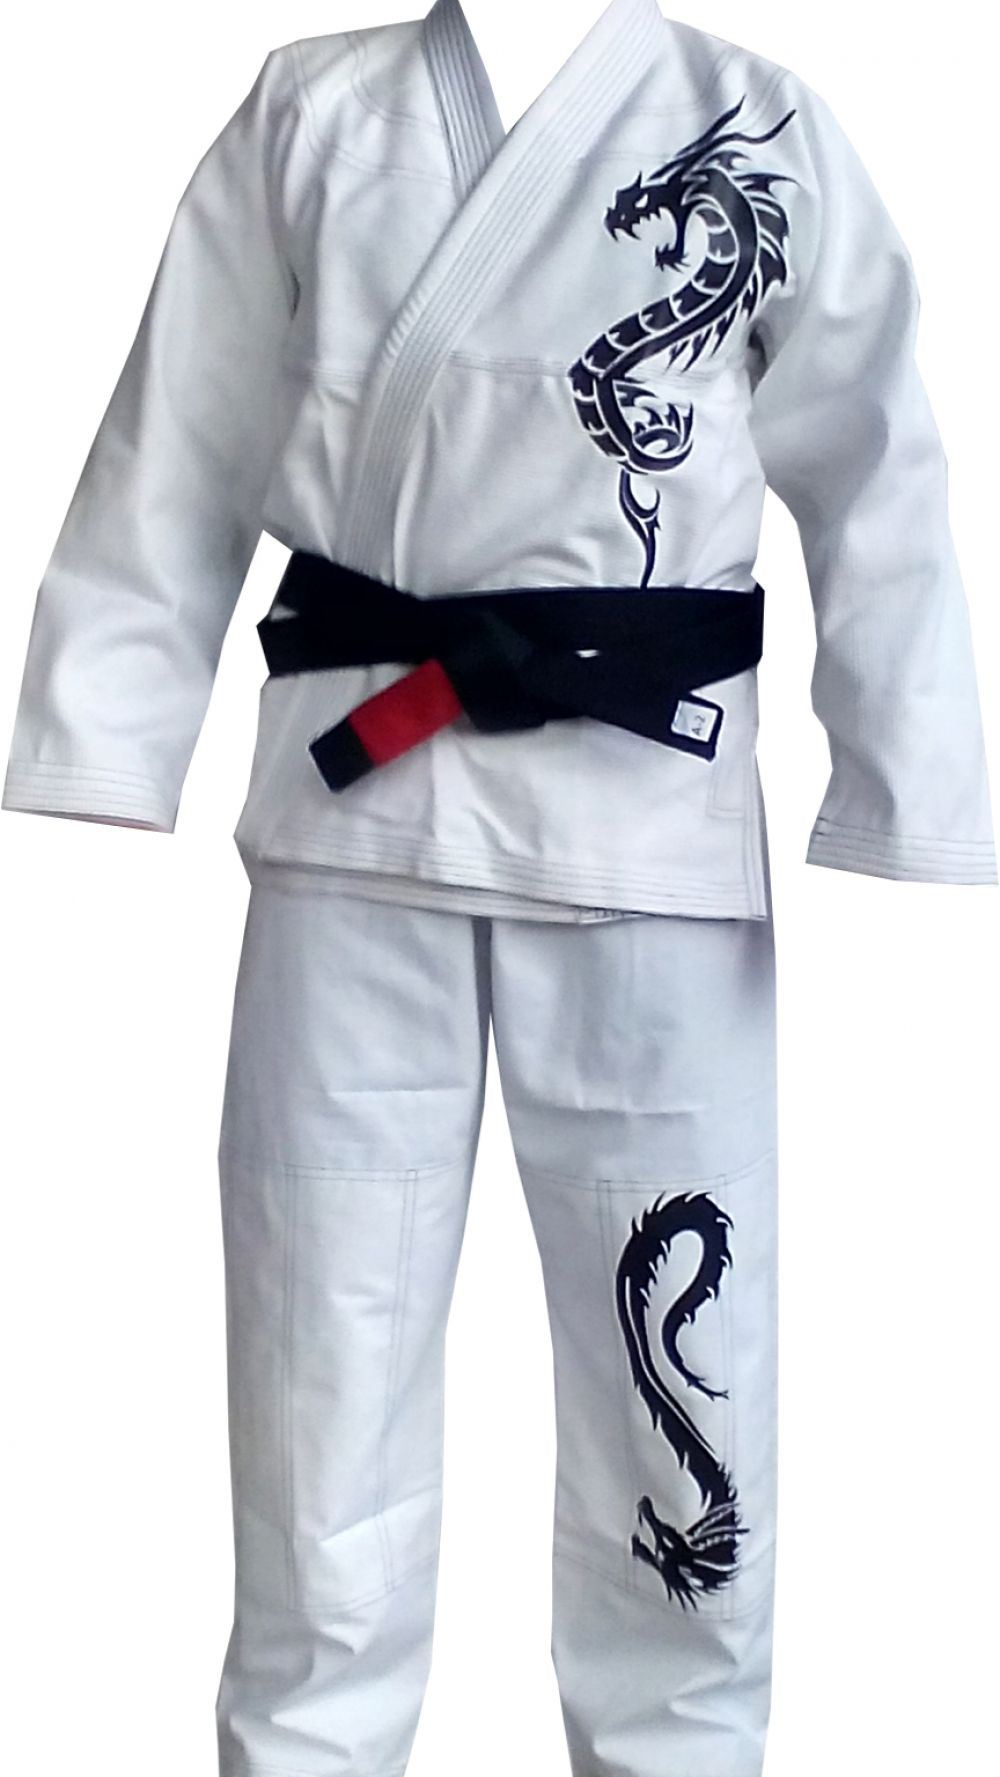 a study on jujitsu We provide the best information on martial arts travel and training locally as well as internationally choose the masters and schools for study martial arts abroad.